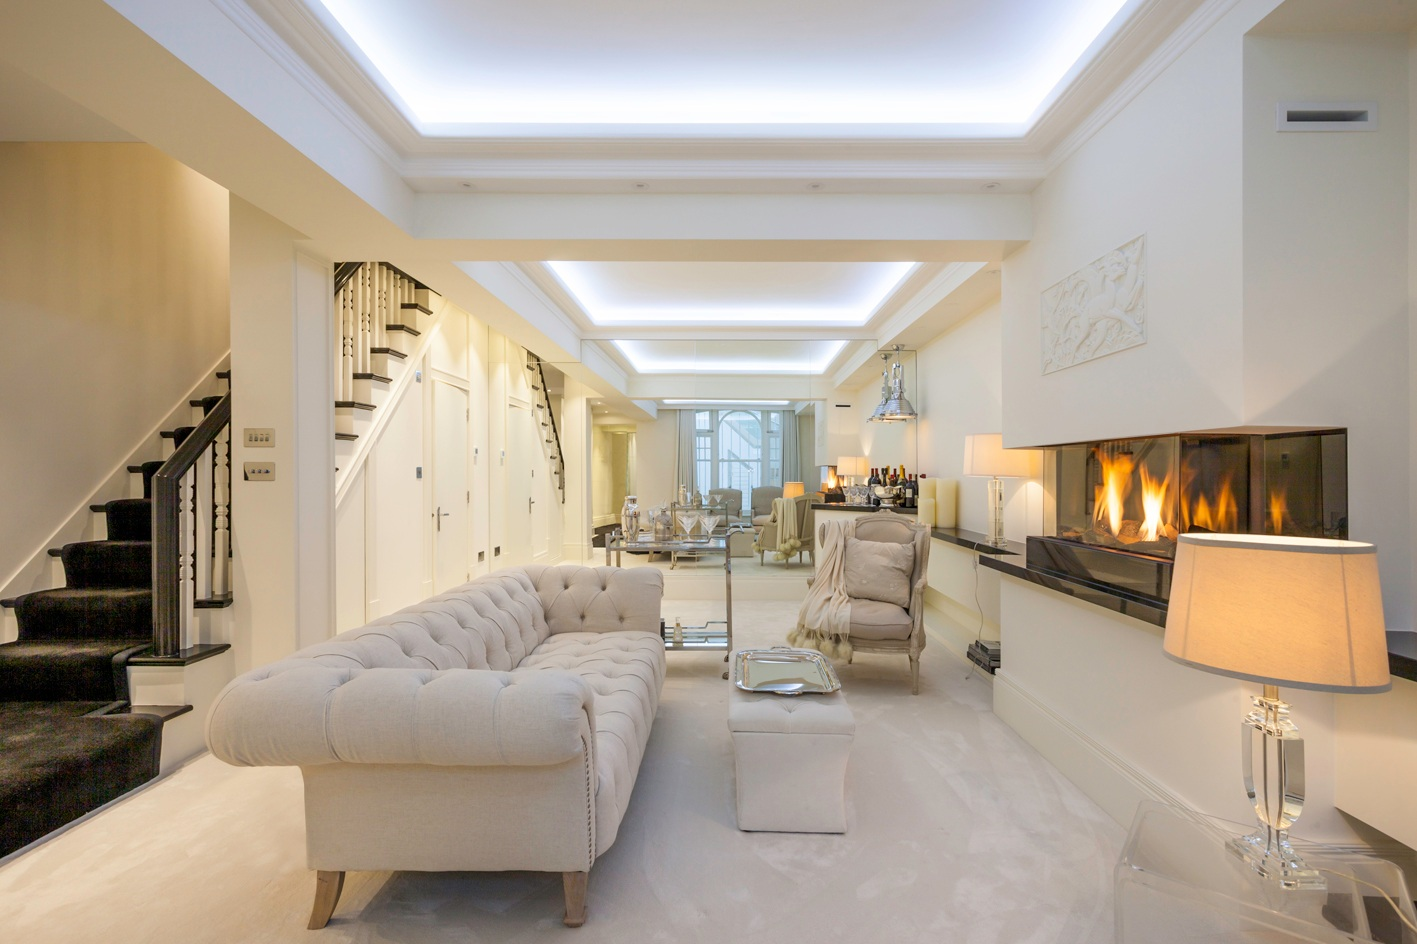 Read the story from our clients - Basement Conversion